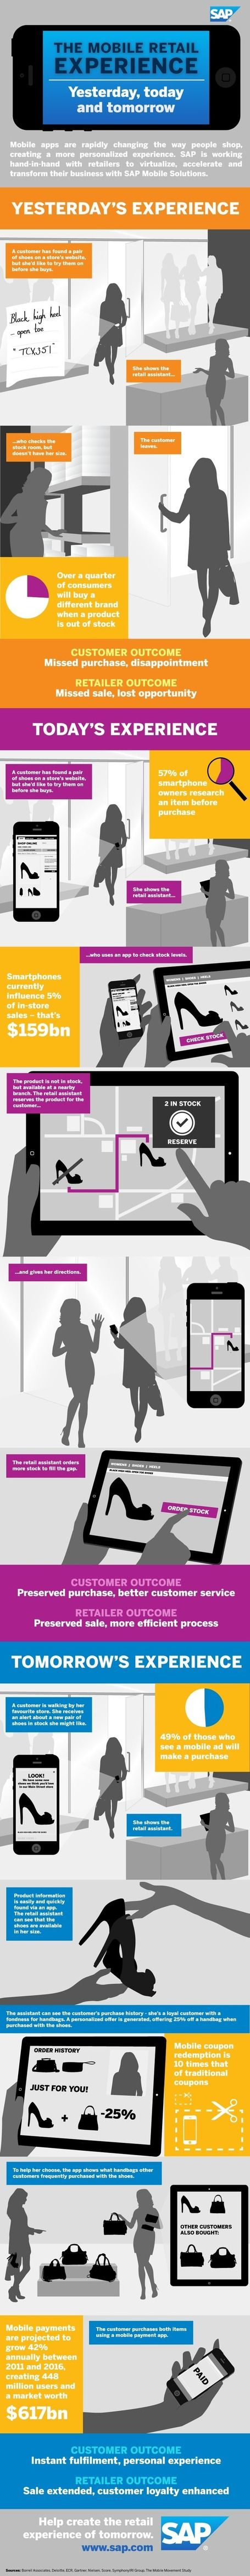 The mobile retail experience infographic - Past. Present. Future.